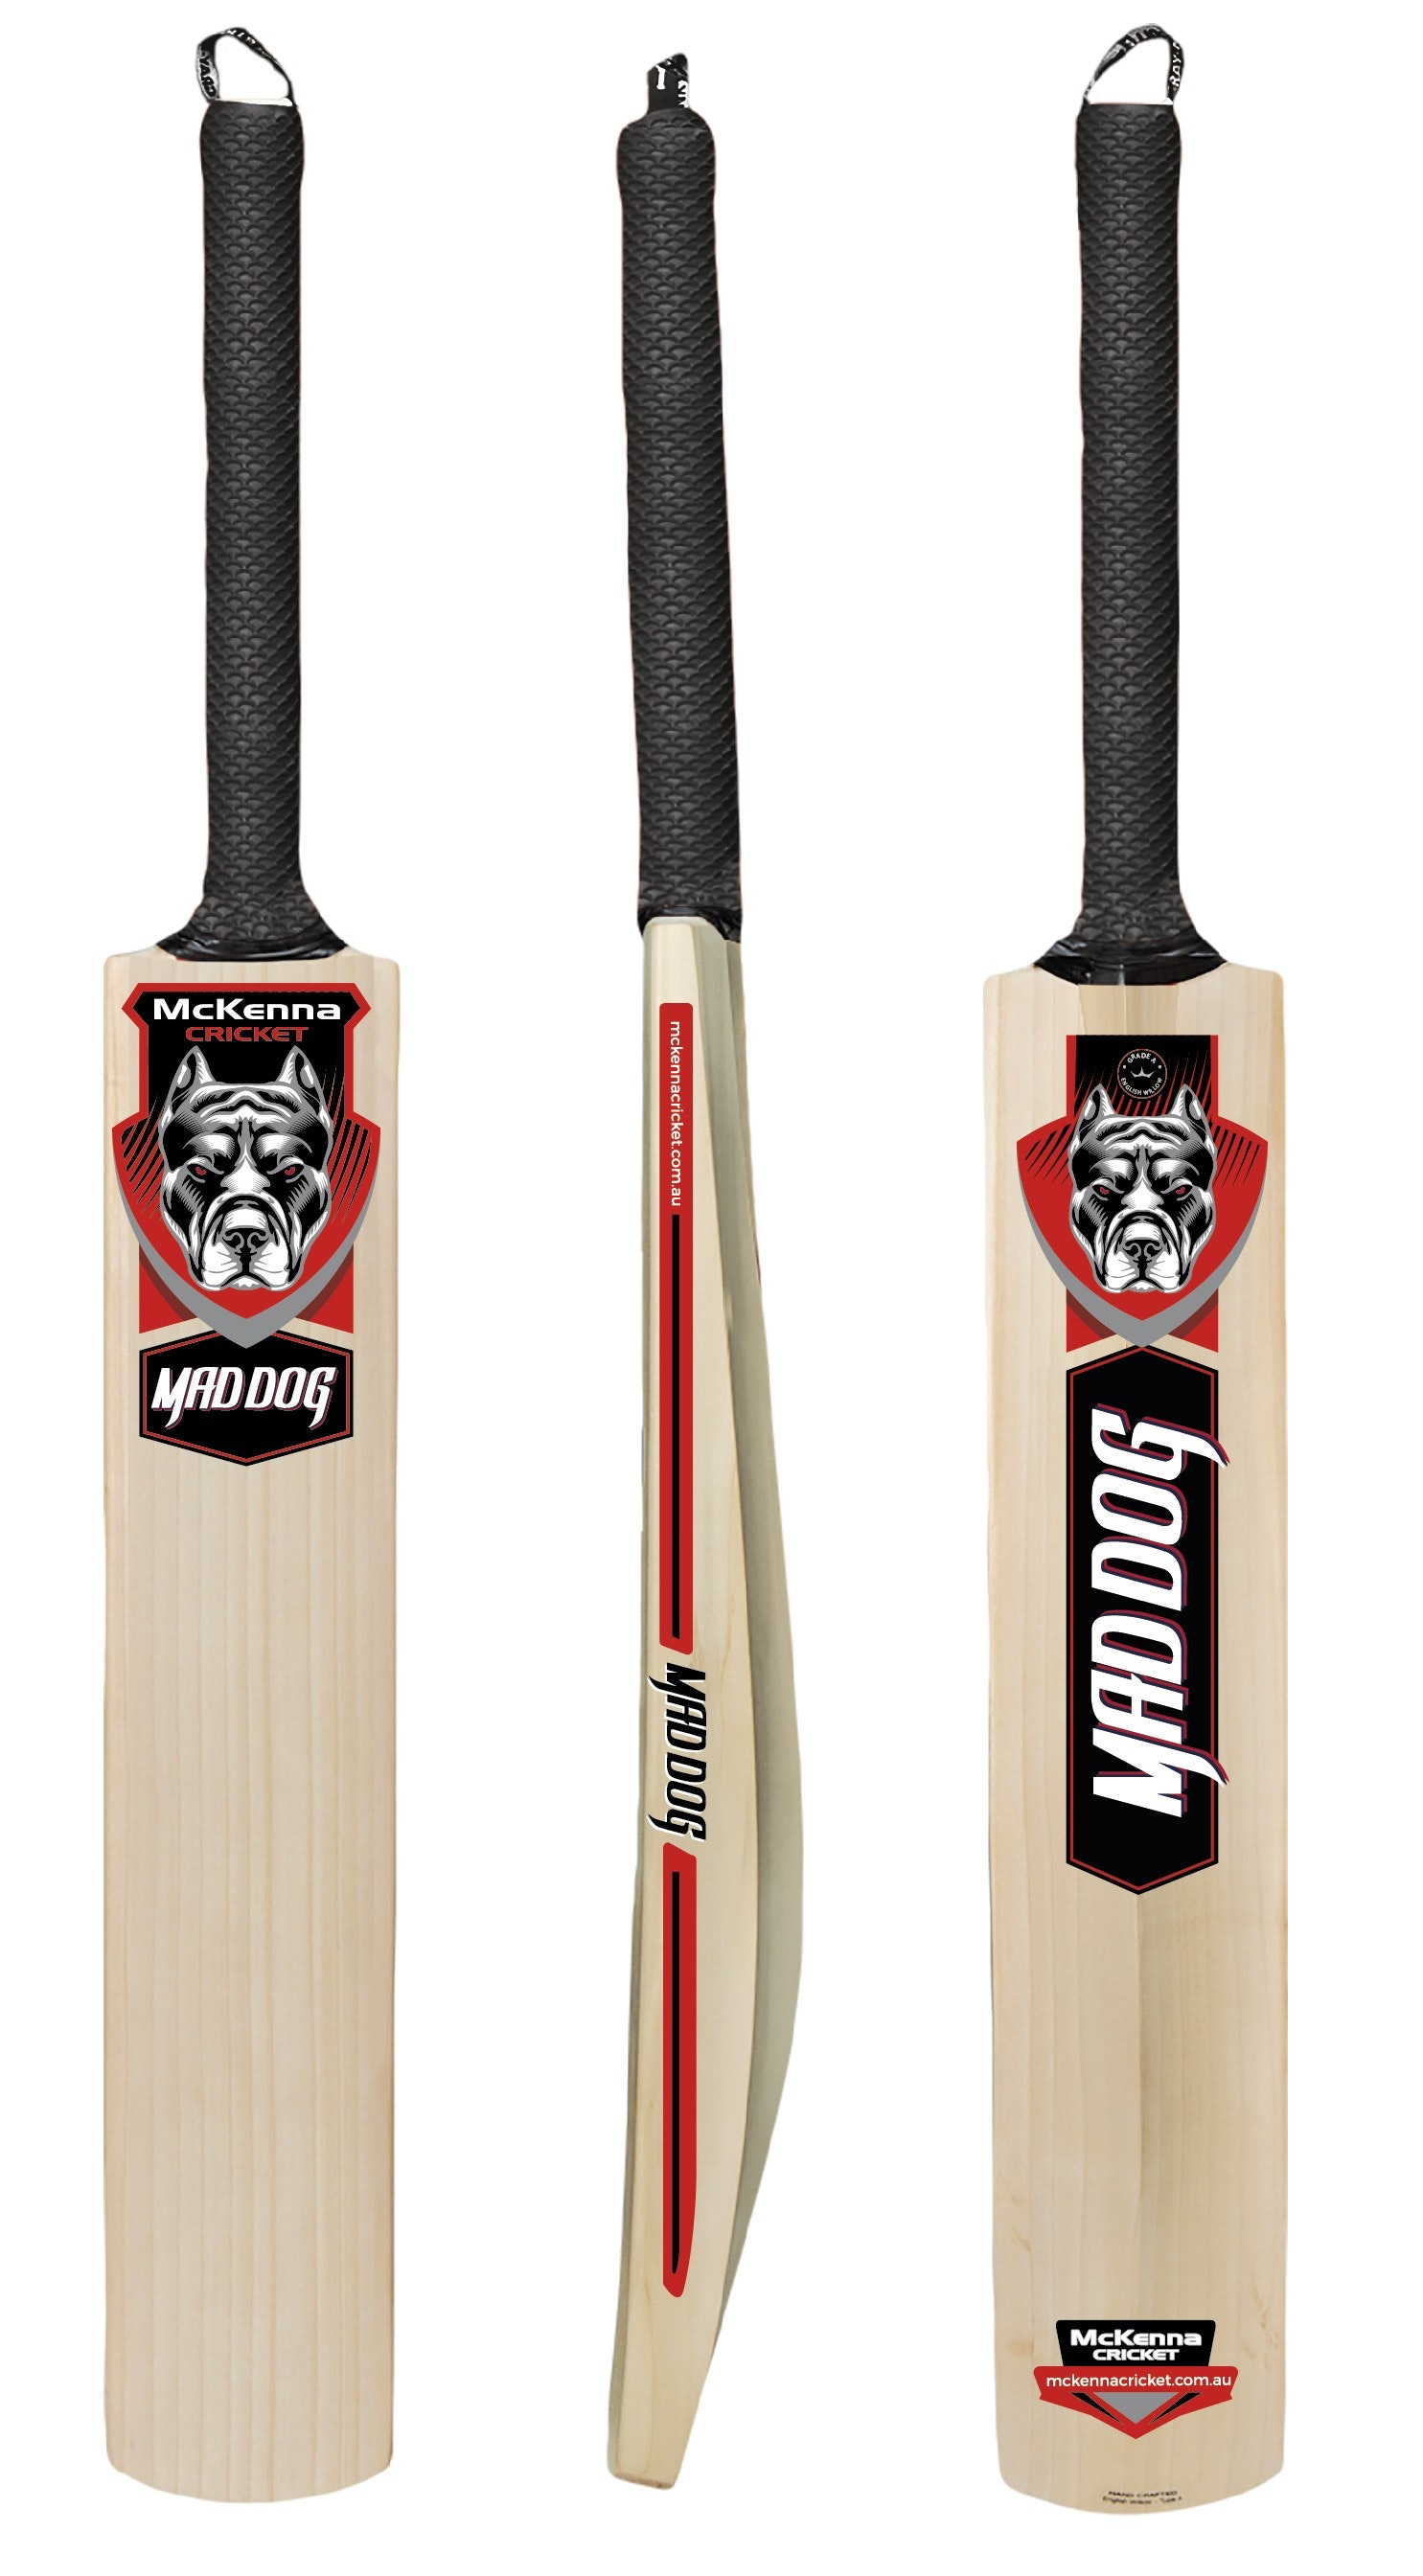 Mad Dog cricket bat stickers